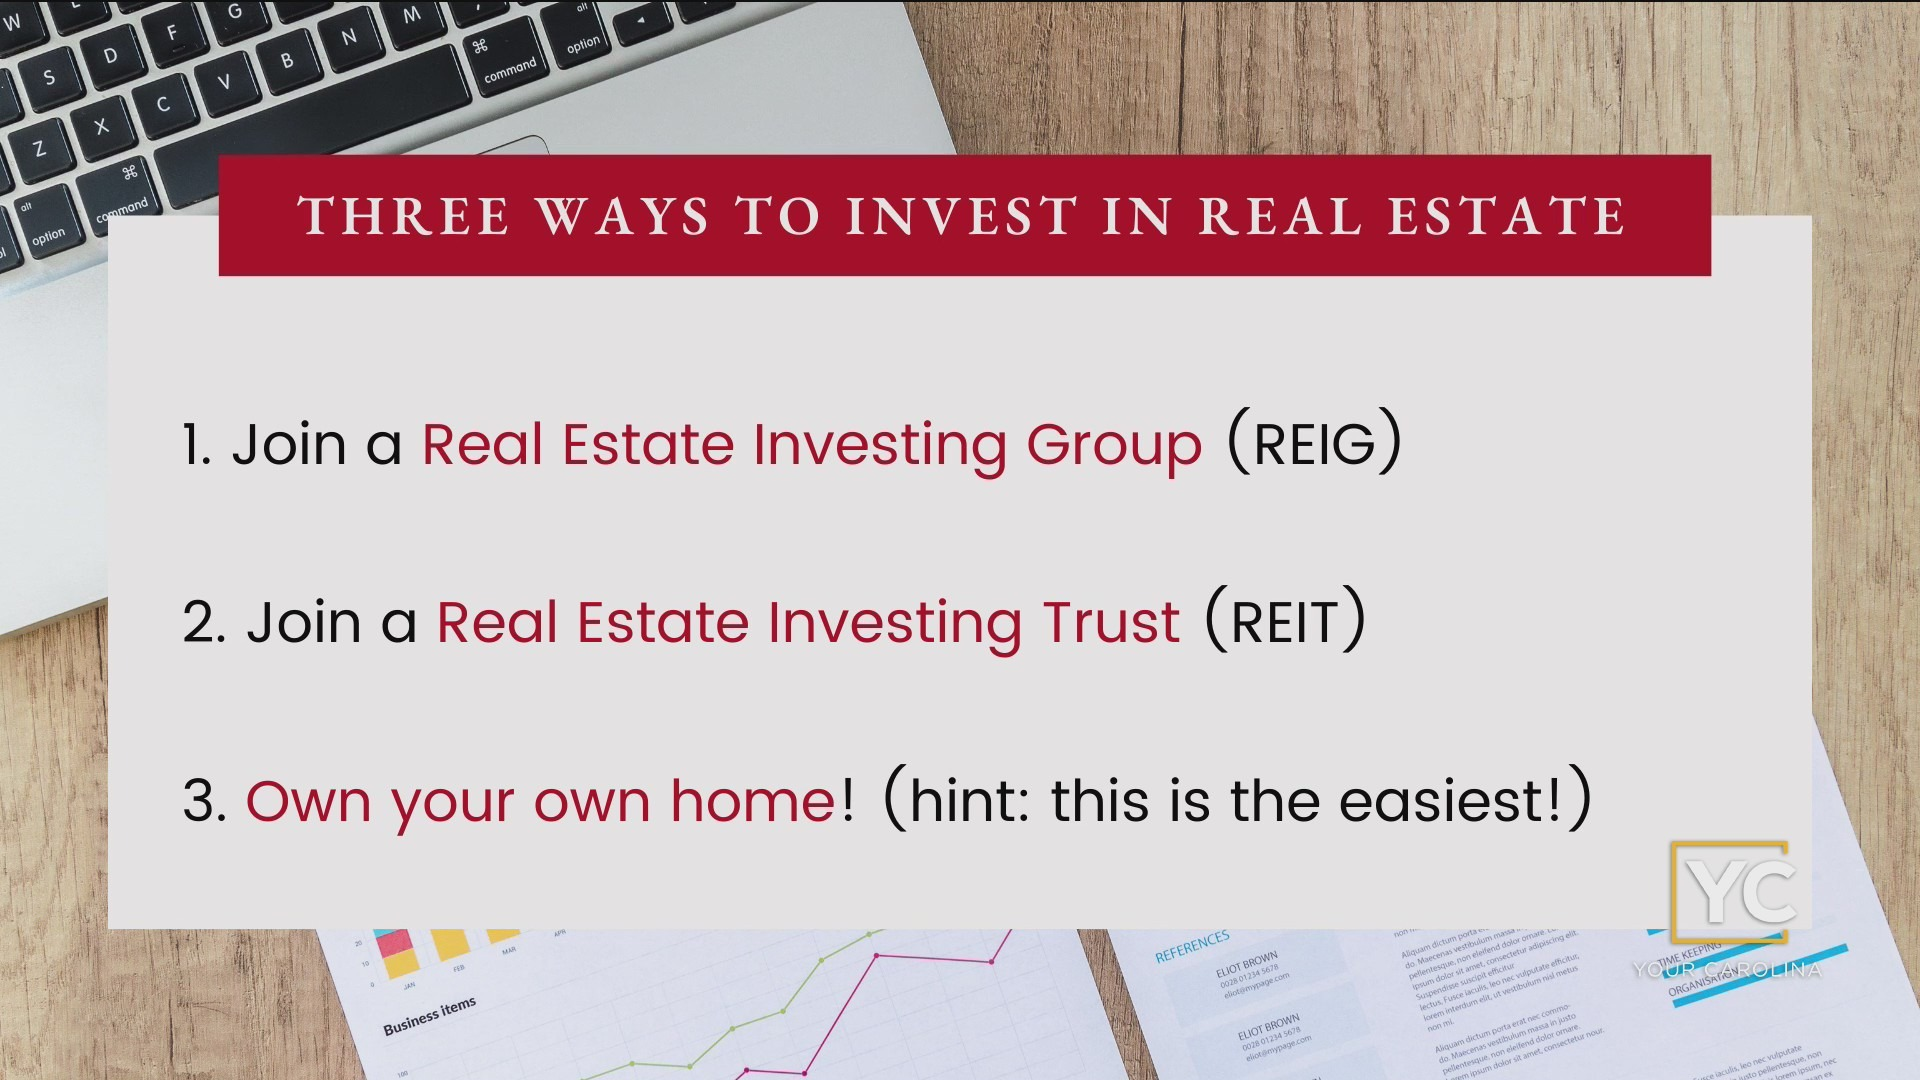 Upstate Homes - Investing In Real Estate